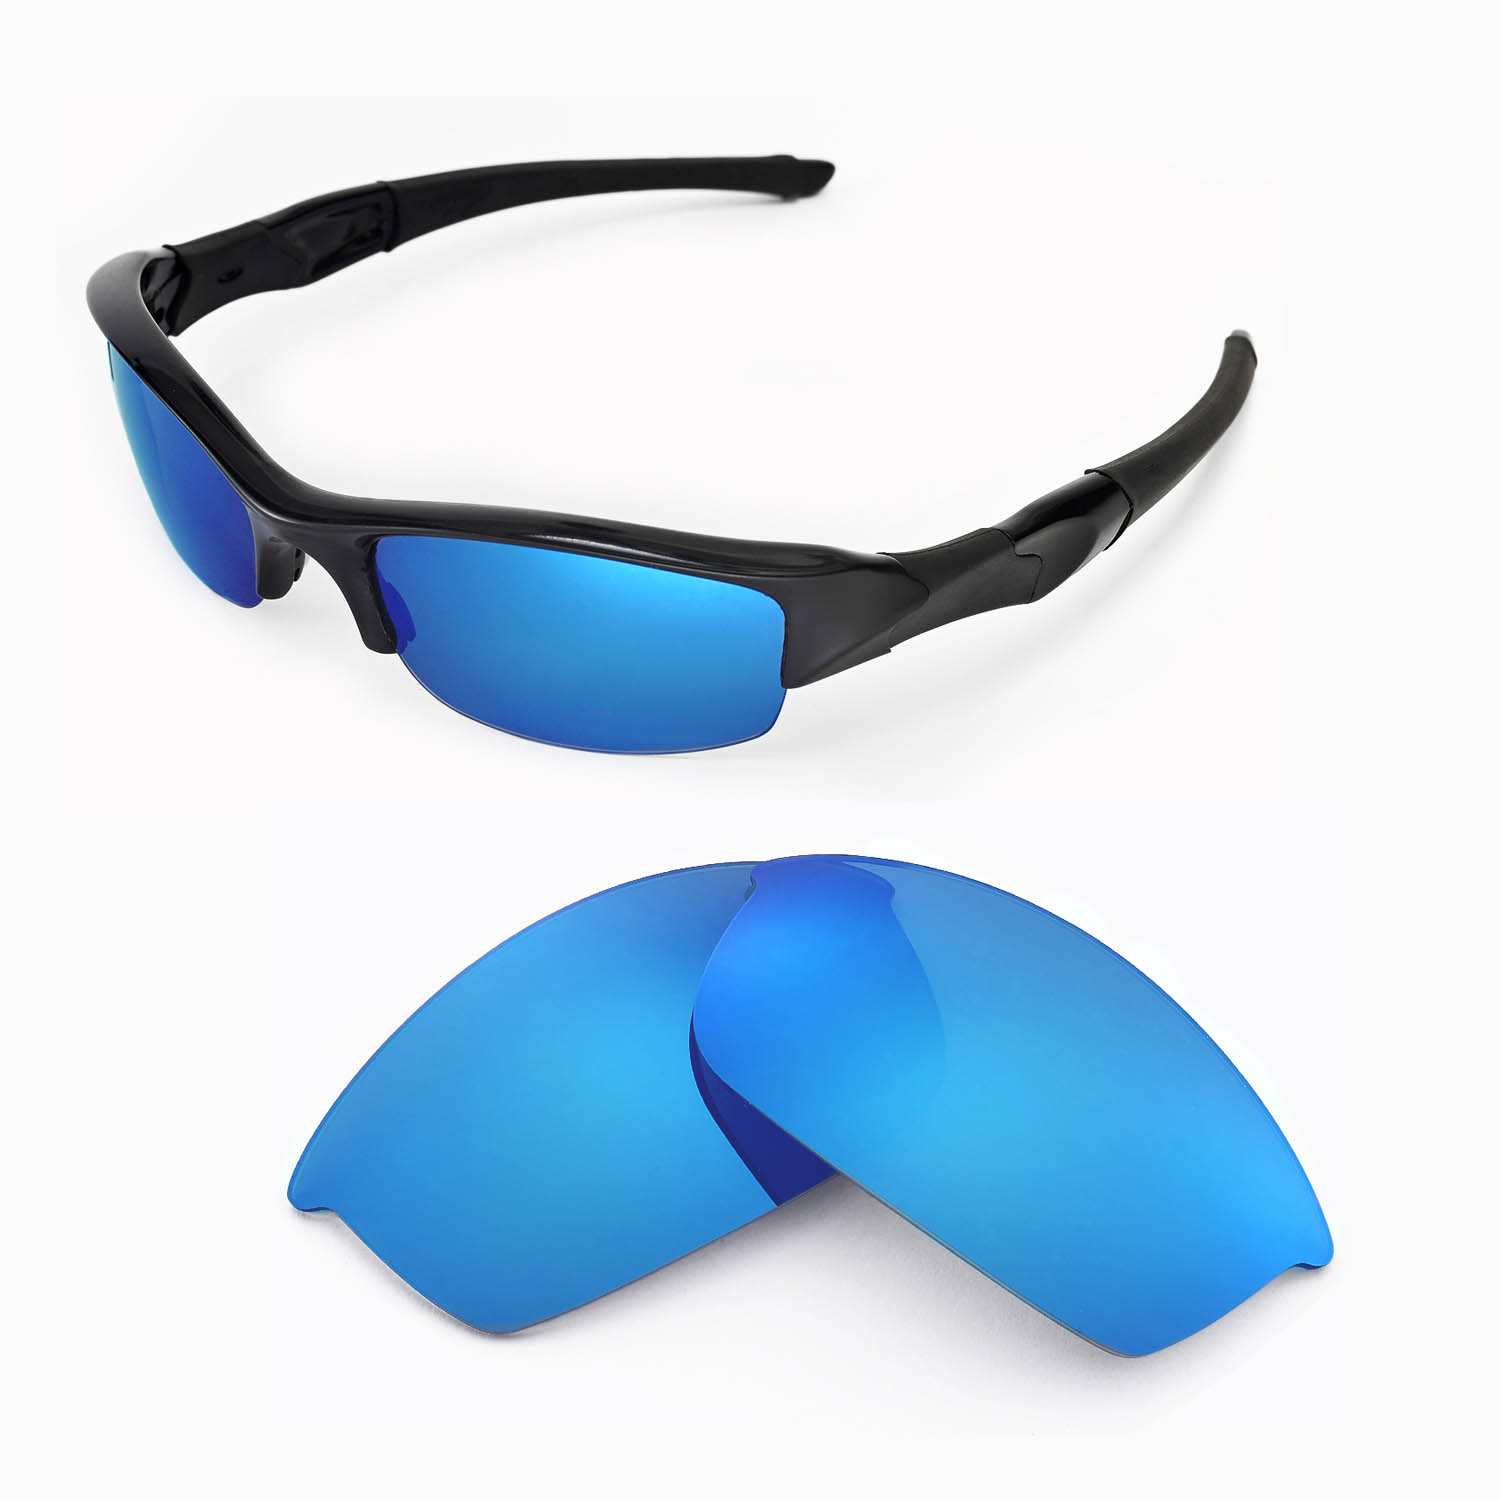 159fd29d7a5 Details about New WL Polarized Ice Blue Replacement Lenses For Oakley Flak  Jacket Sunglasses